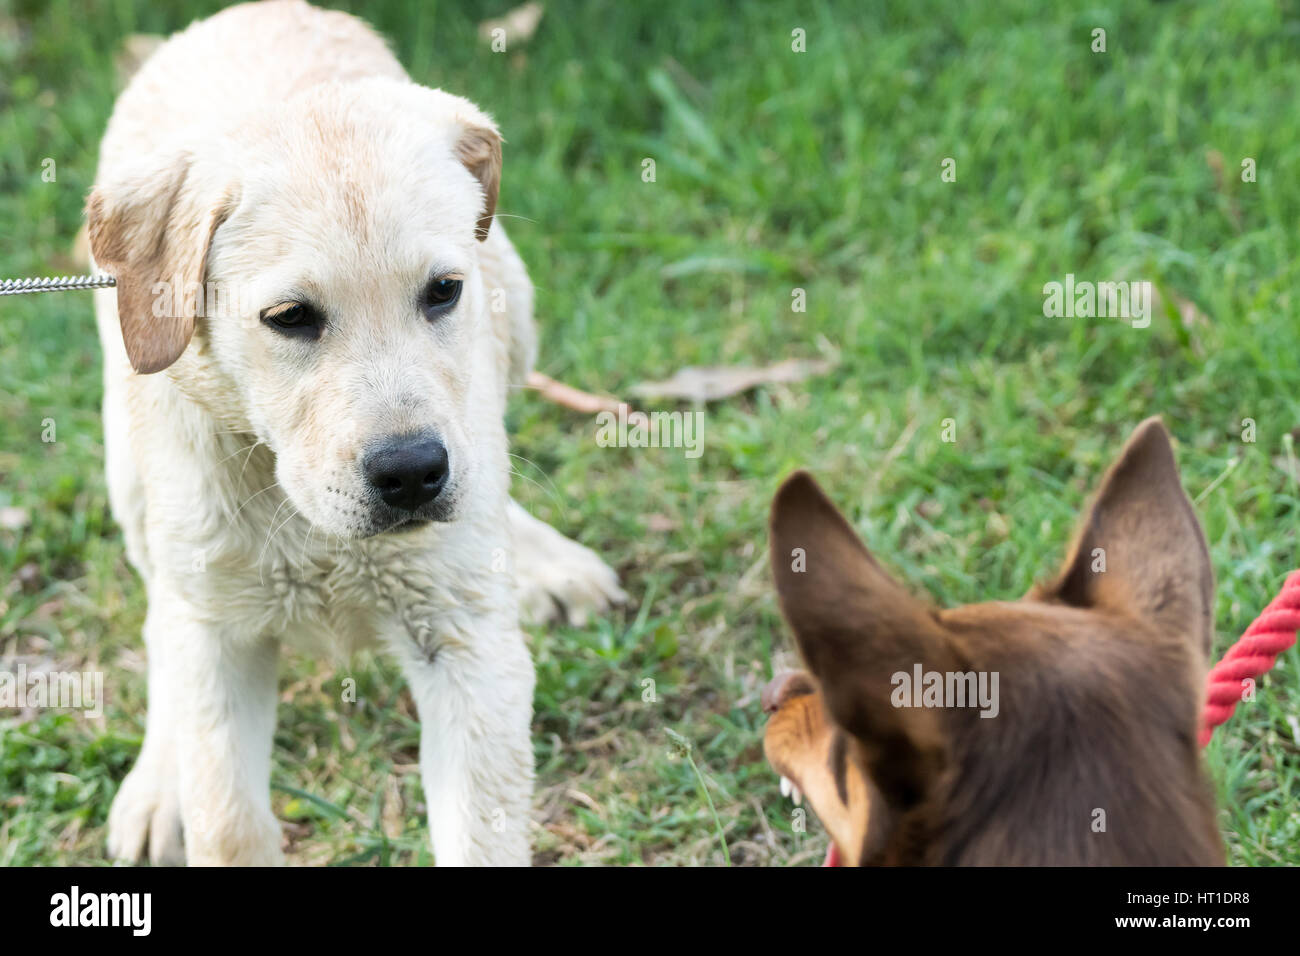 A Kelpie dog growls and bares his teeth at a Labrador Retriever puppy, who looks scared. - Stock Image